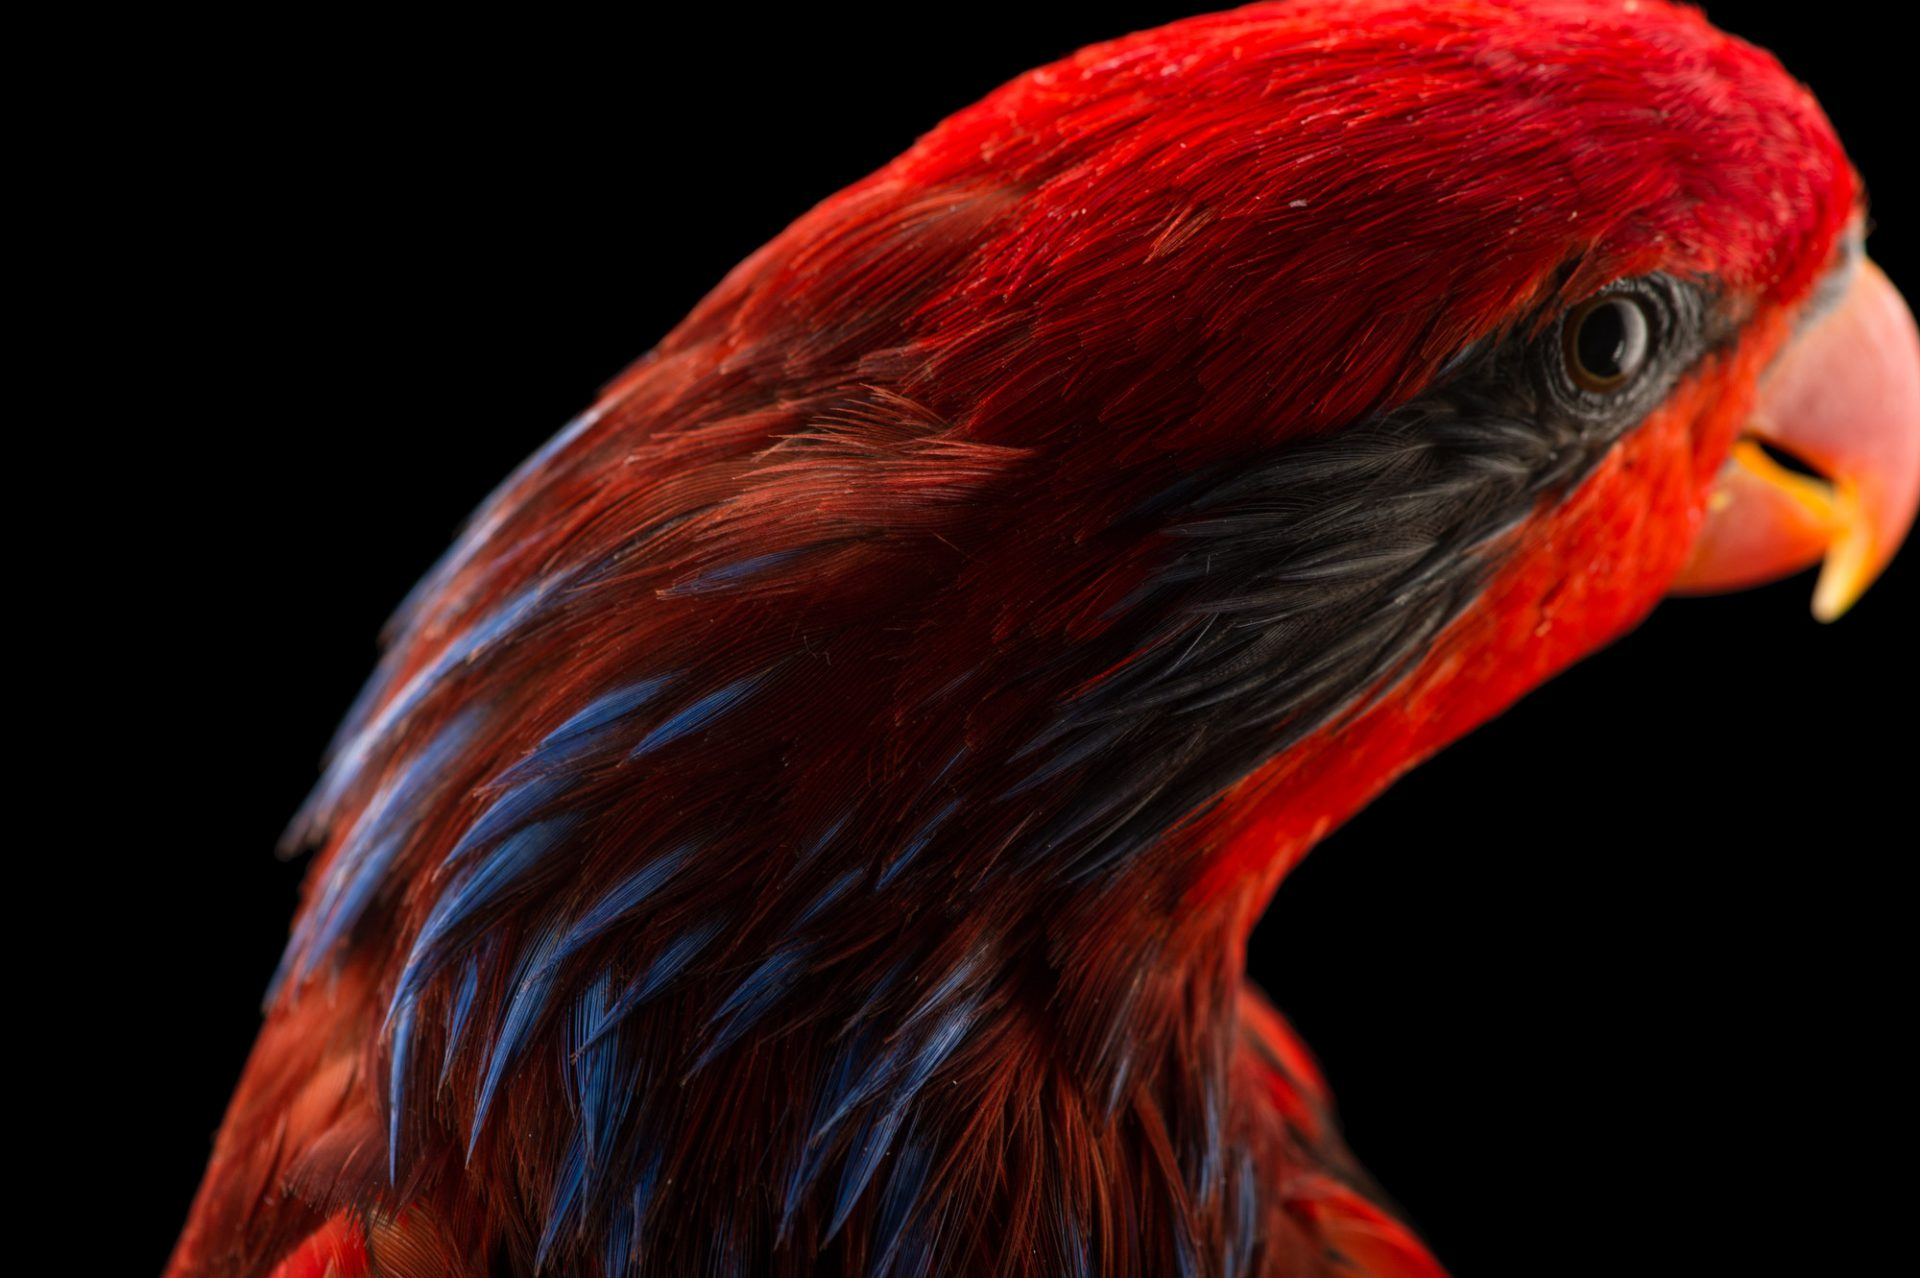 Picture of a Blue-streaked lory (Eos reticulata) at the Columbus Zoo.